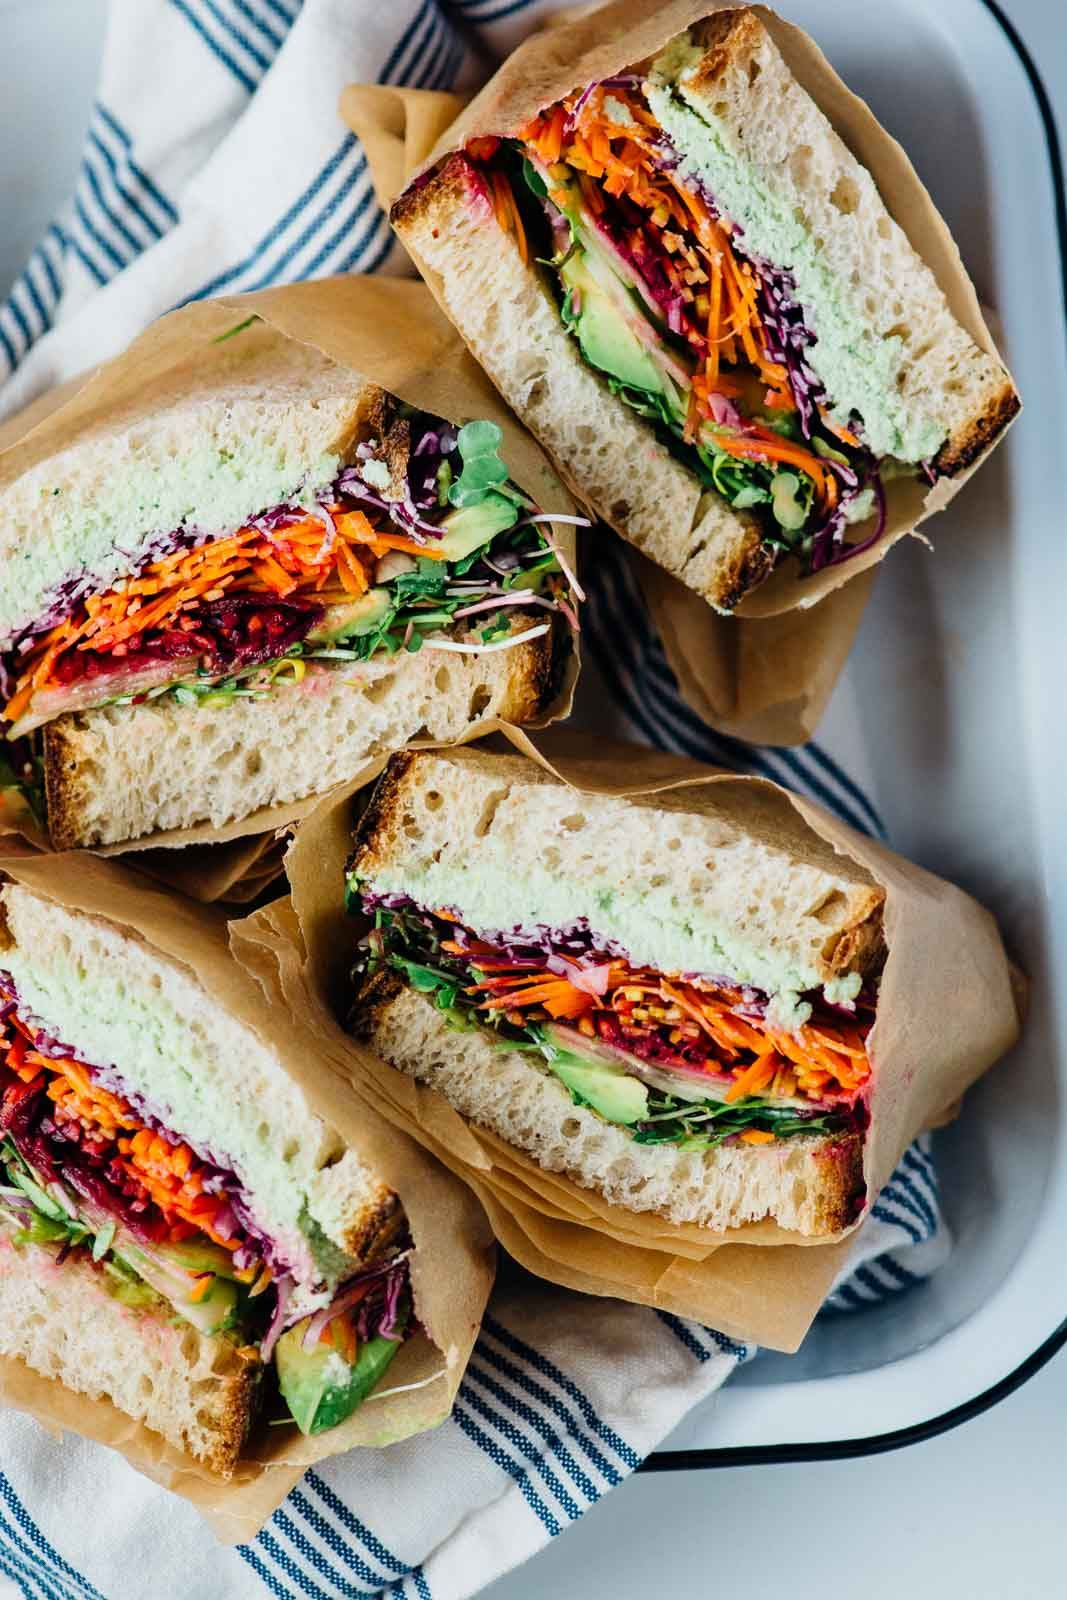 This ultimate rainbow veggie sandwich is loaded with fresh veggies and topped off with a garlicky basil almond ricotta. Delicious!